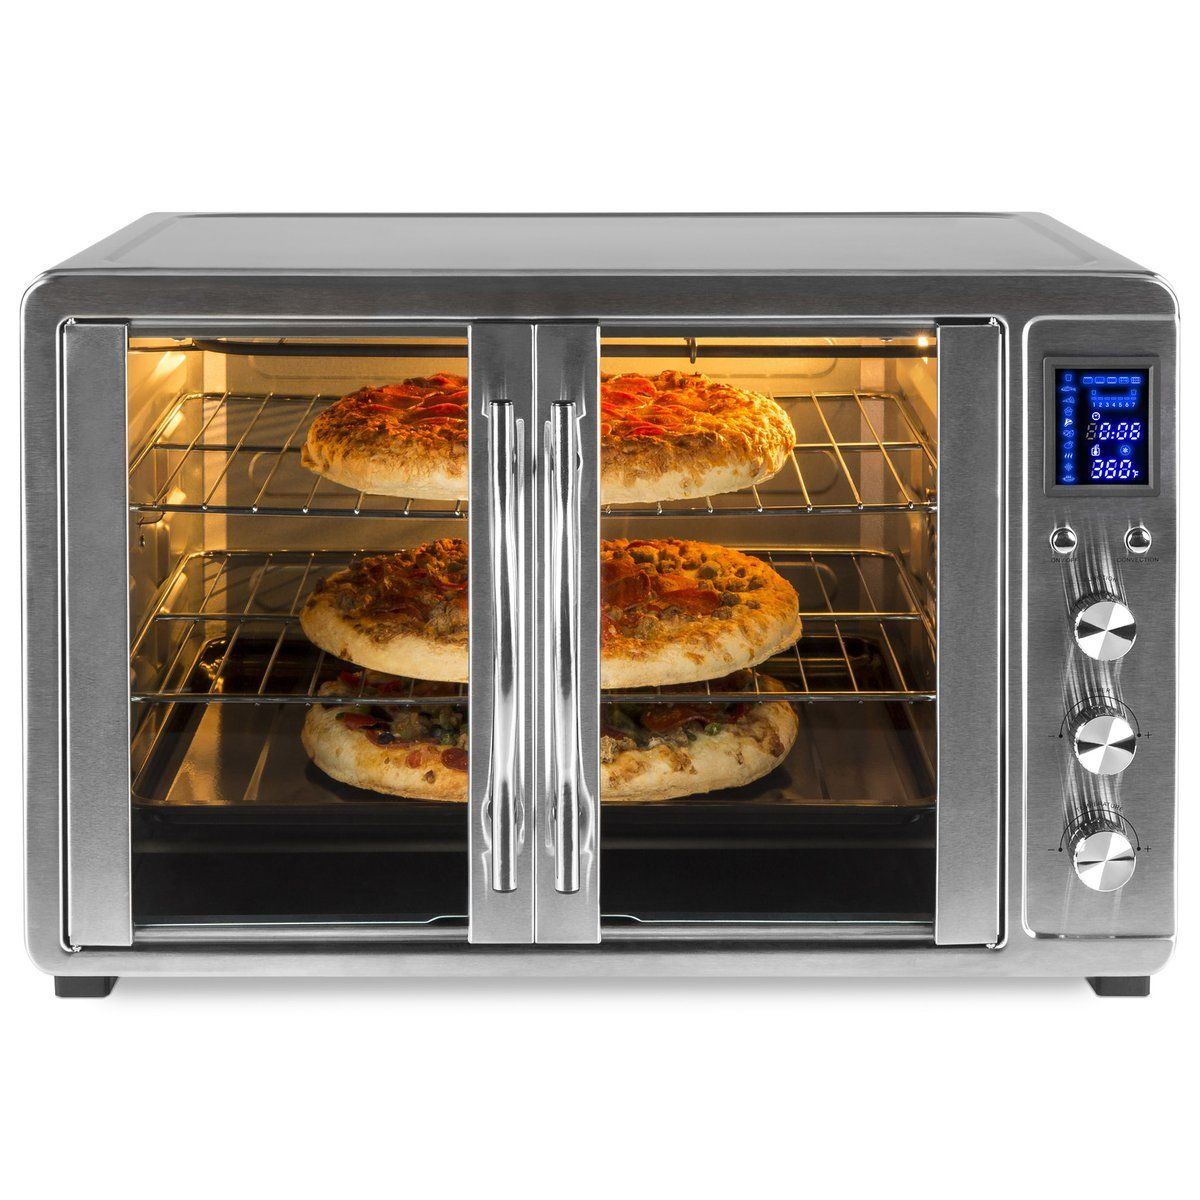 55l 1800w Extra Large Countertop Convection Toaster Oven W French